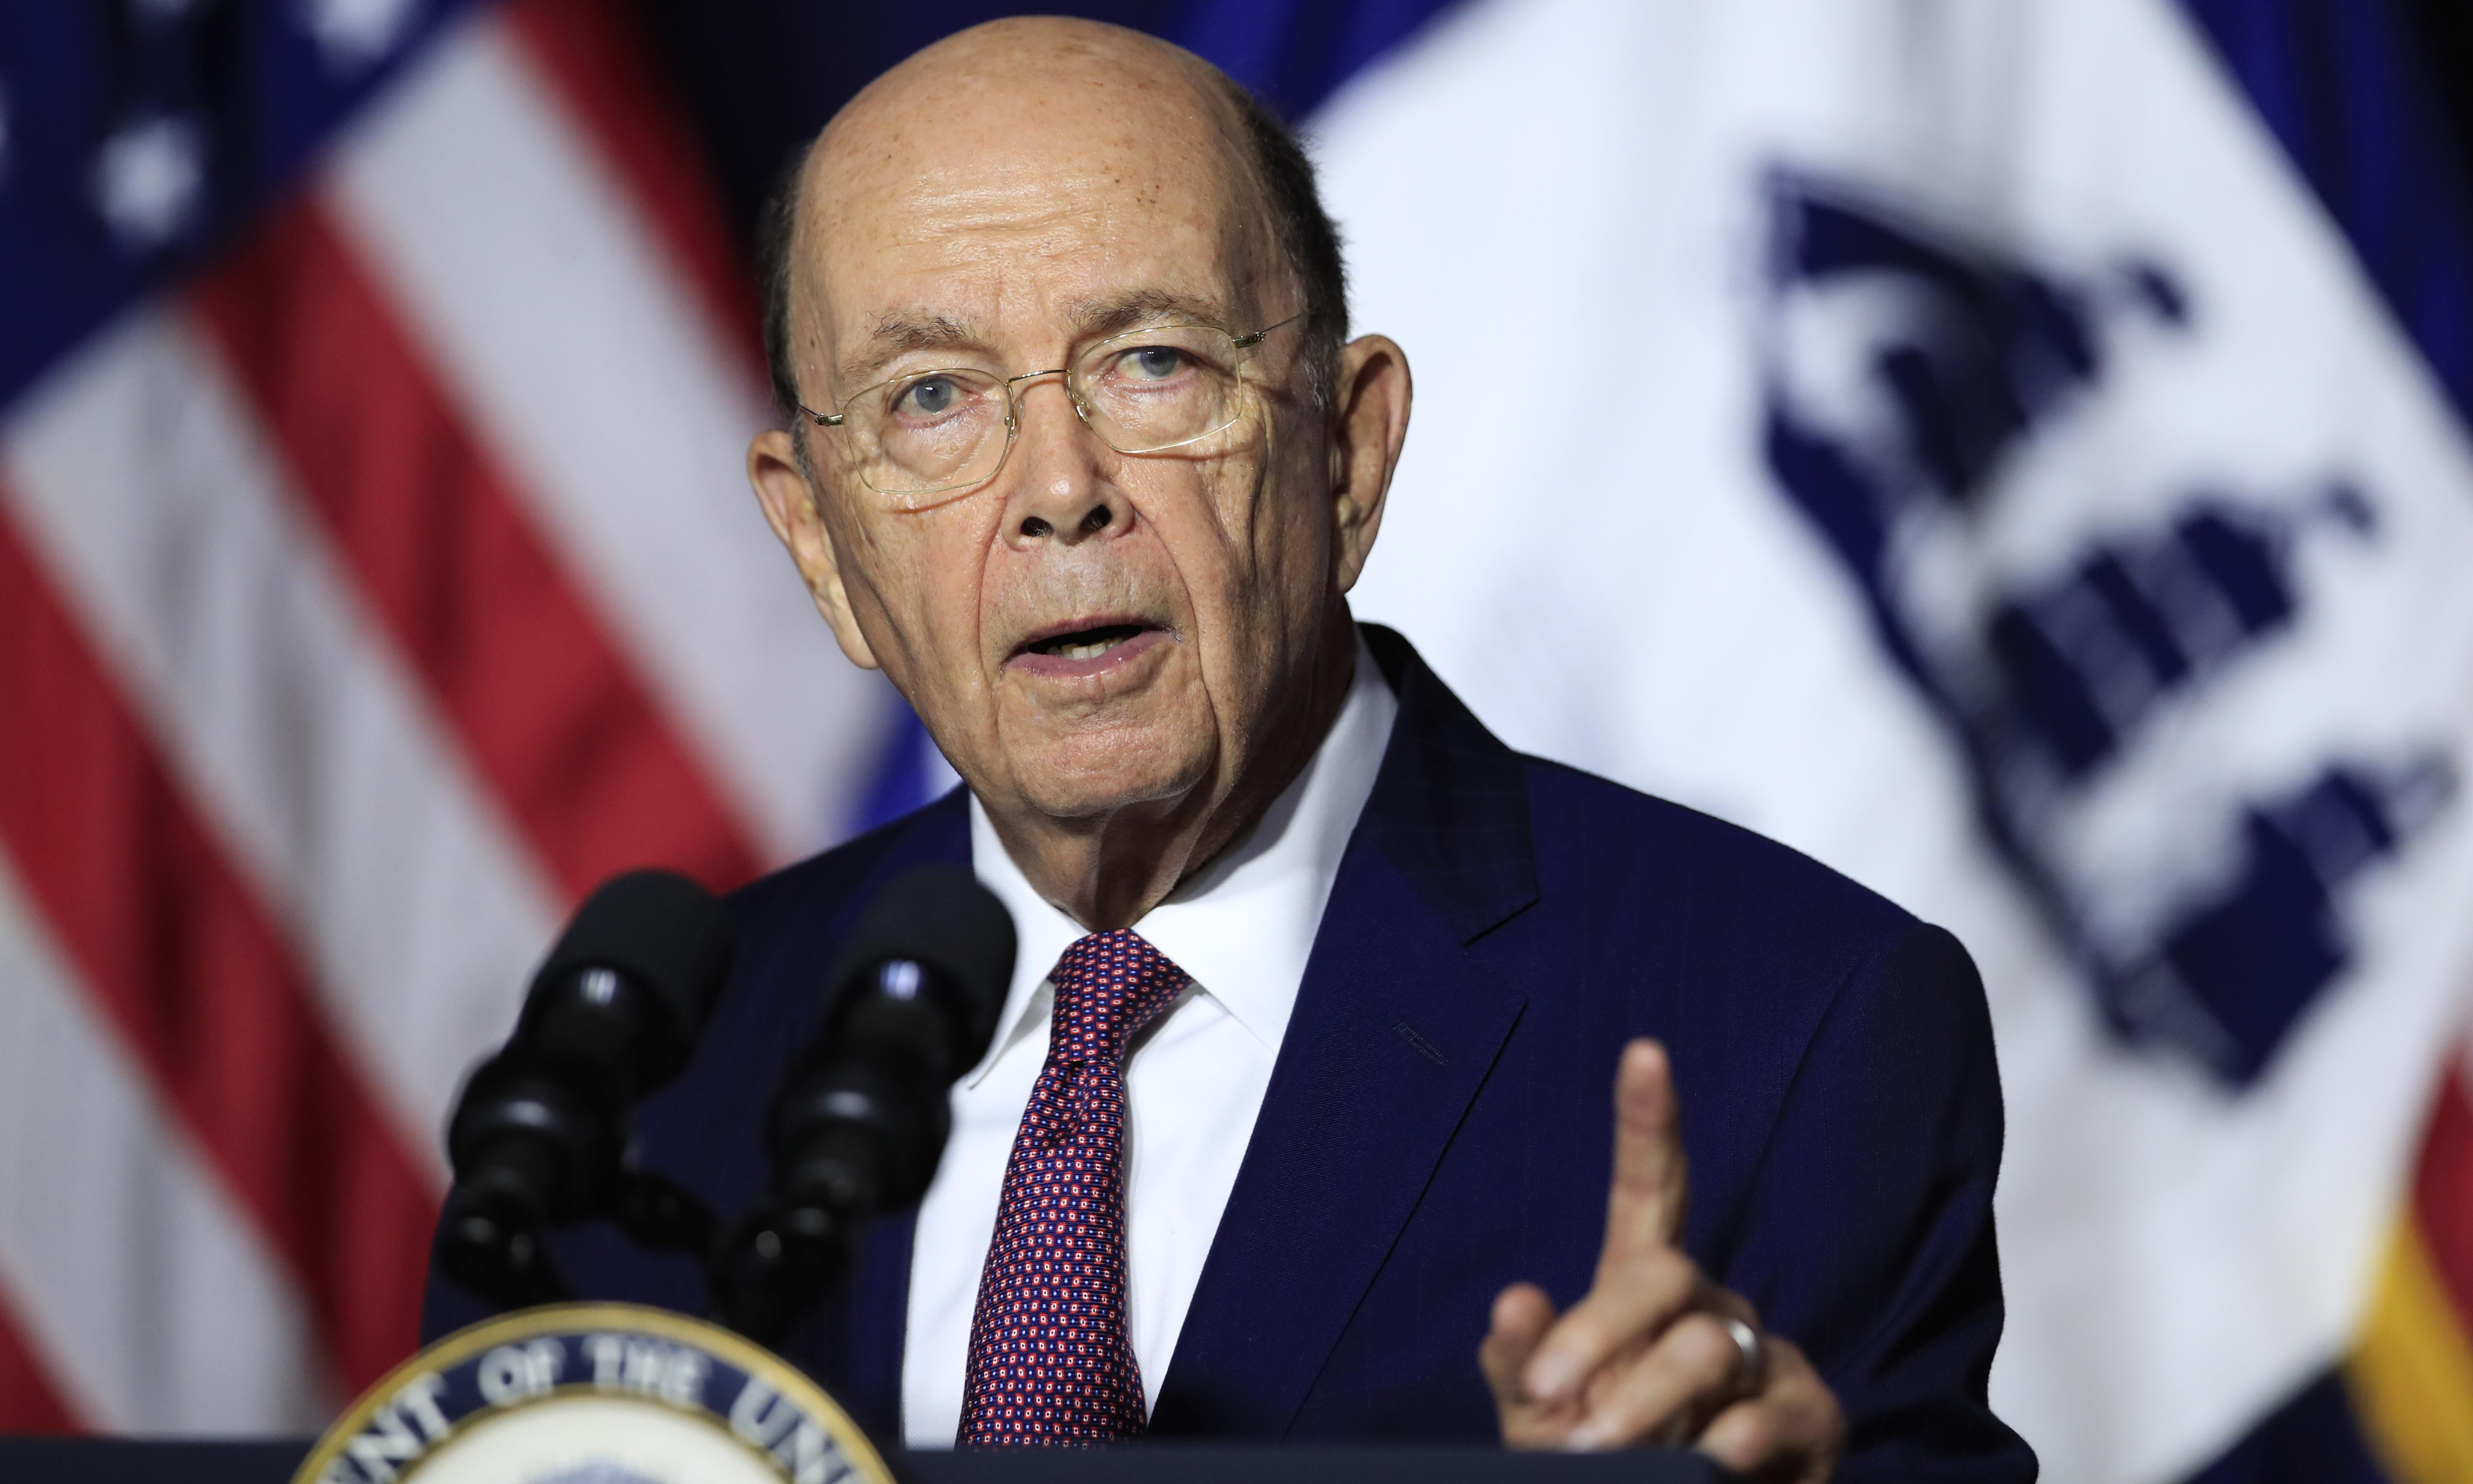 Wilbur Ross faces calls to resign after report he threatened firings over 'Sharpiegate'